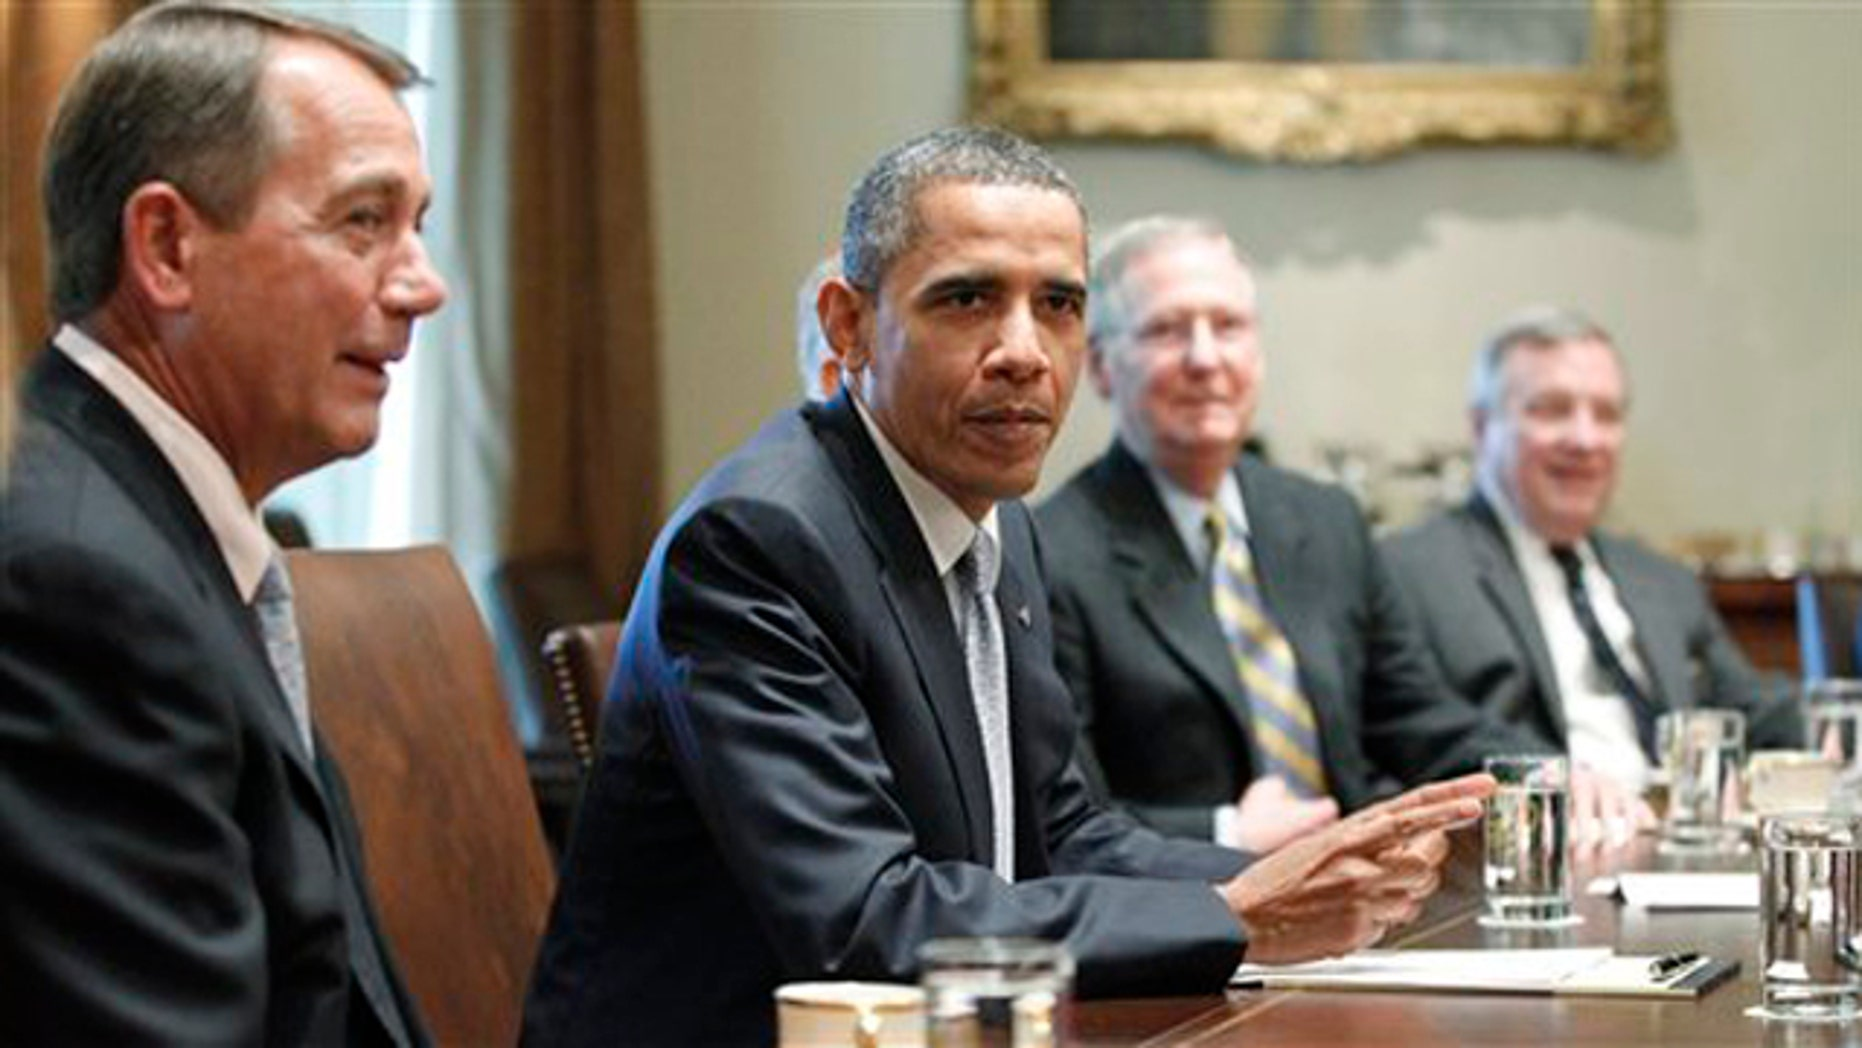 President Obama sits with House Speaker John Boehner, Senate Minority Leader Mitch McConnell and Sen. Dick Durbin as he meets regarding the debt ceiling in the Cabinet Room of the White House July 13.